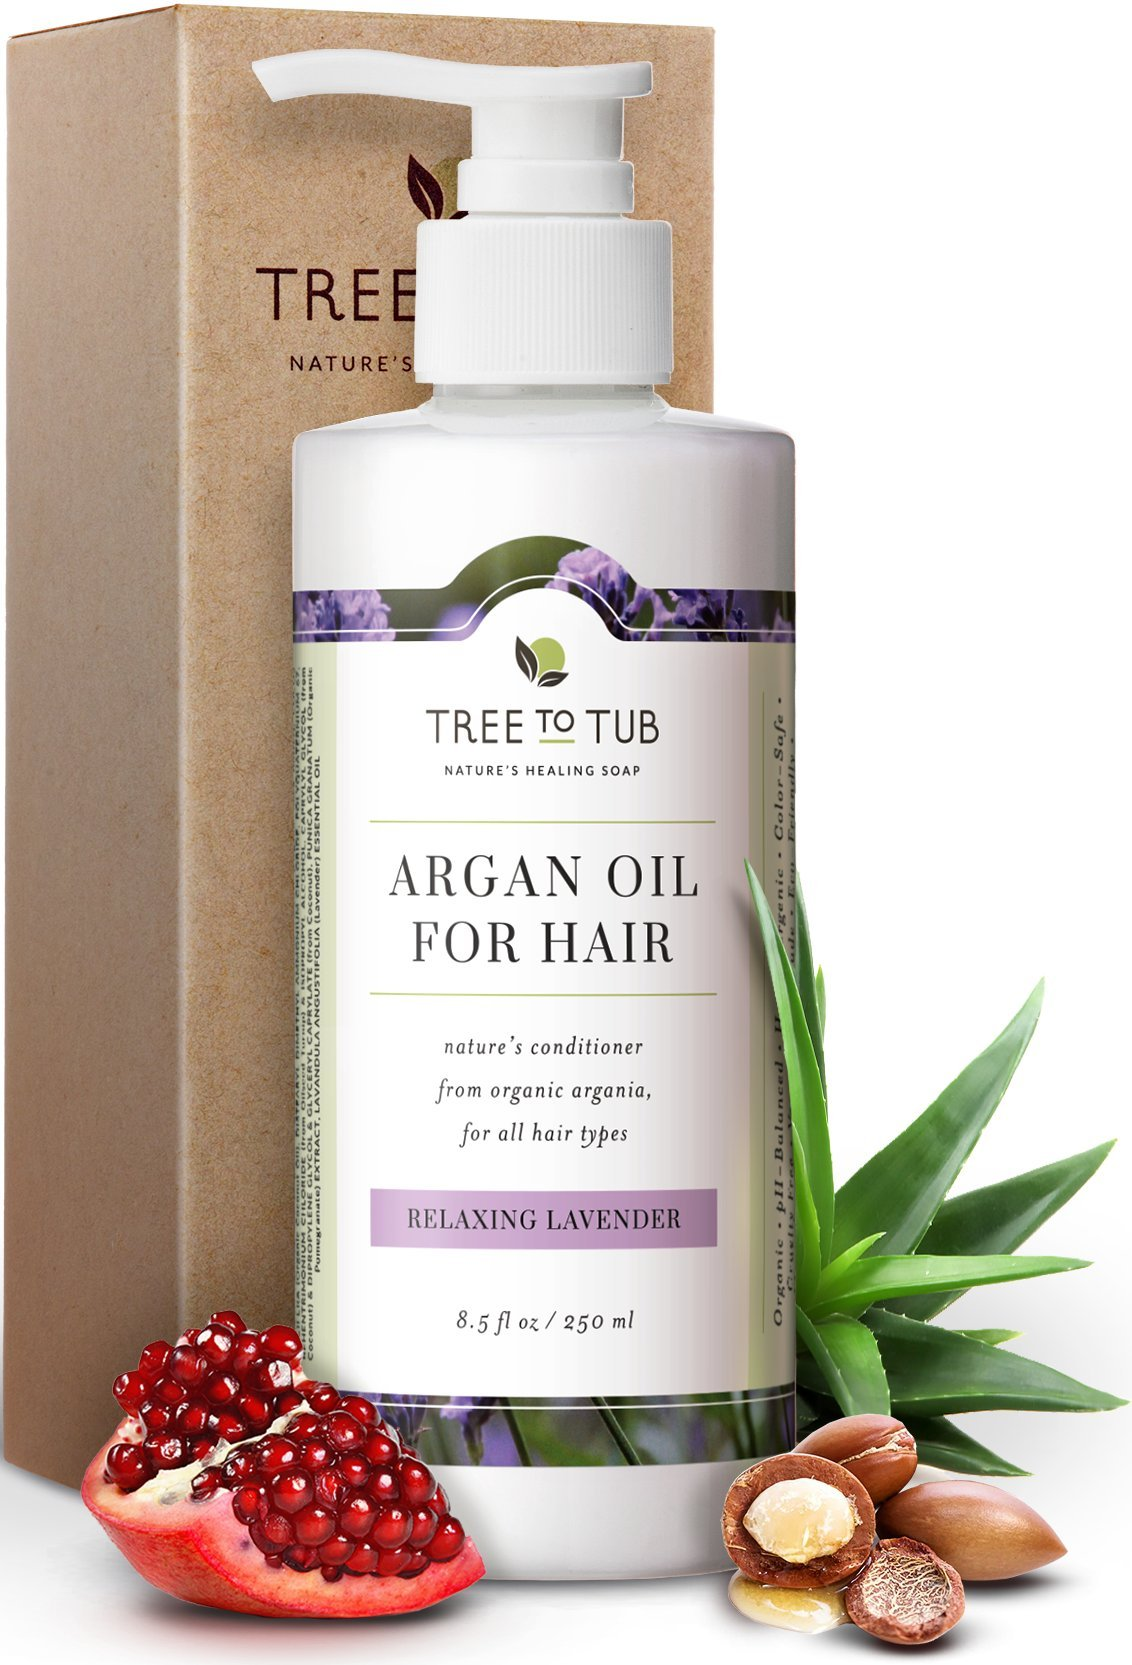 Real, Argan Oil Conditioner For Dry Hair, by Tree To Tub. The Only pH 5.5 Balanced Lavender Hair Conditioner For Damaged Hair and Sensitive Skin, With Organic Wild Soapberries, 8.5 oz